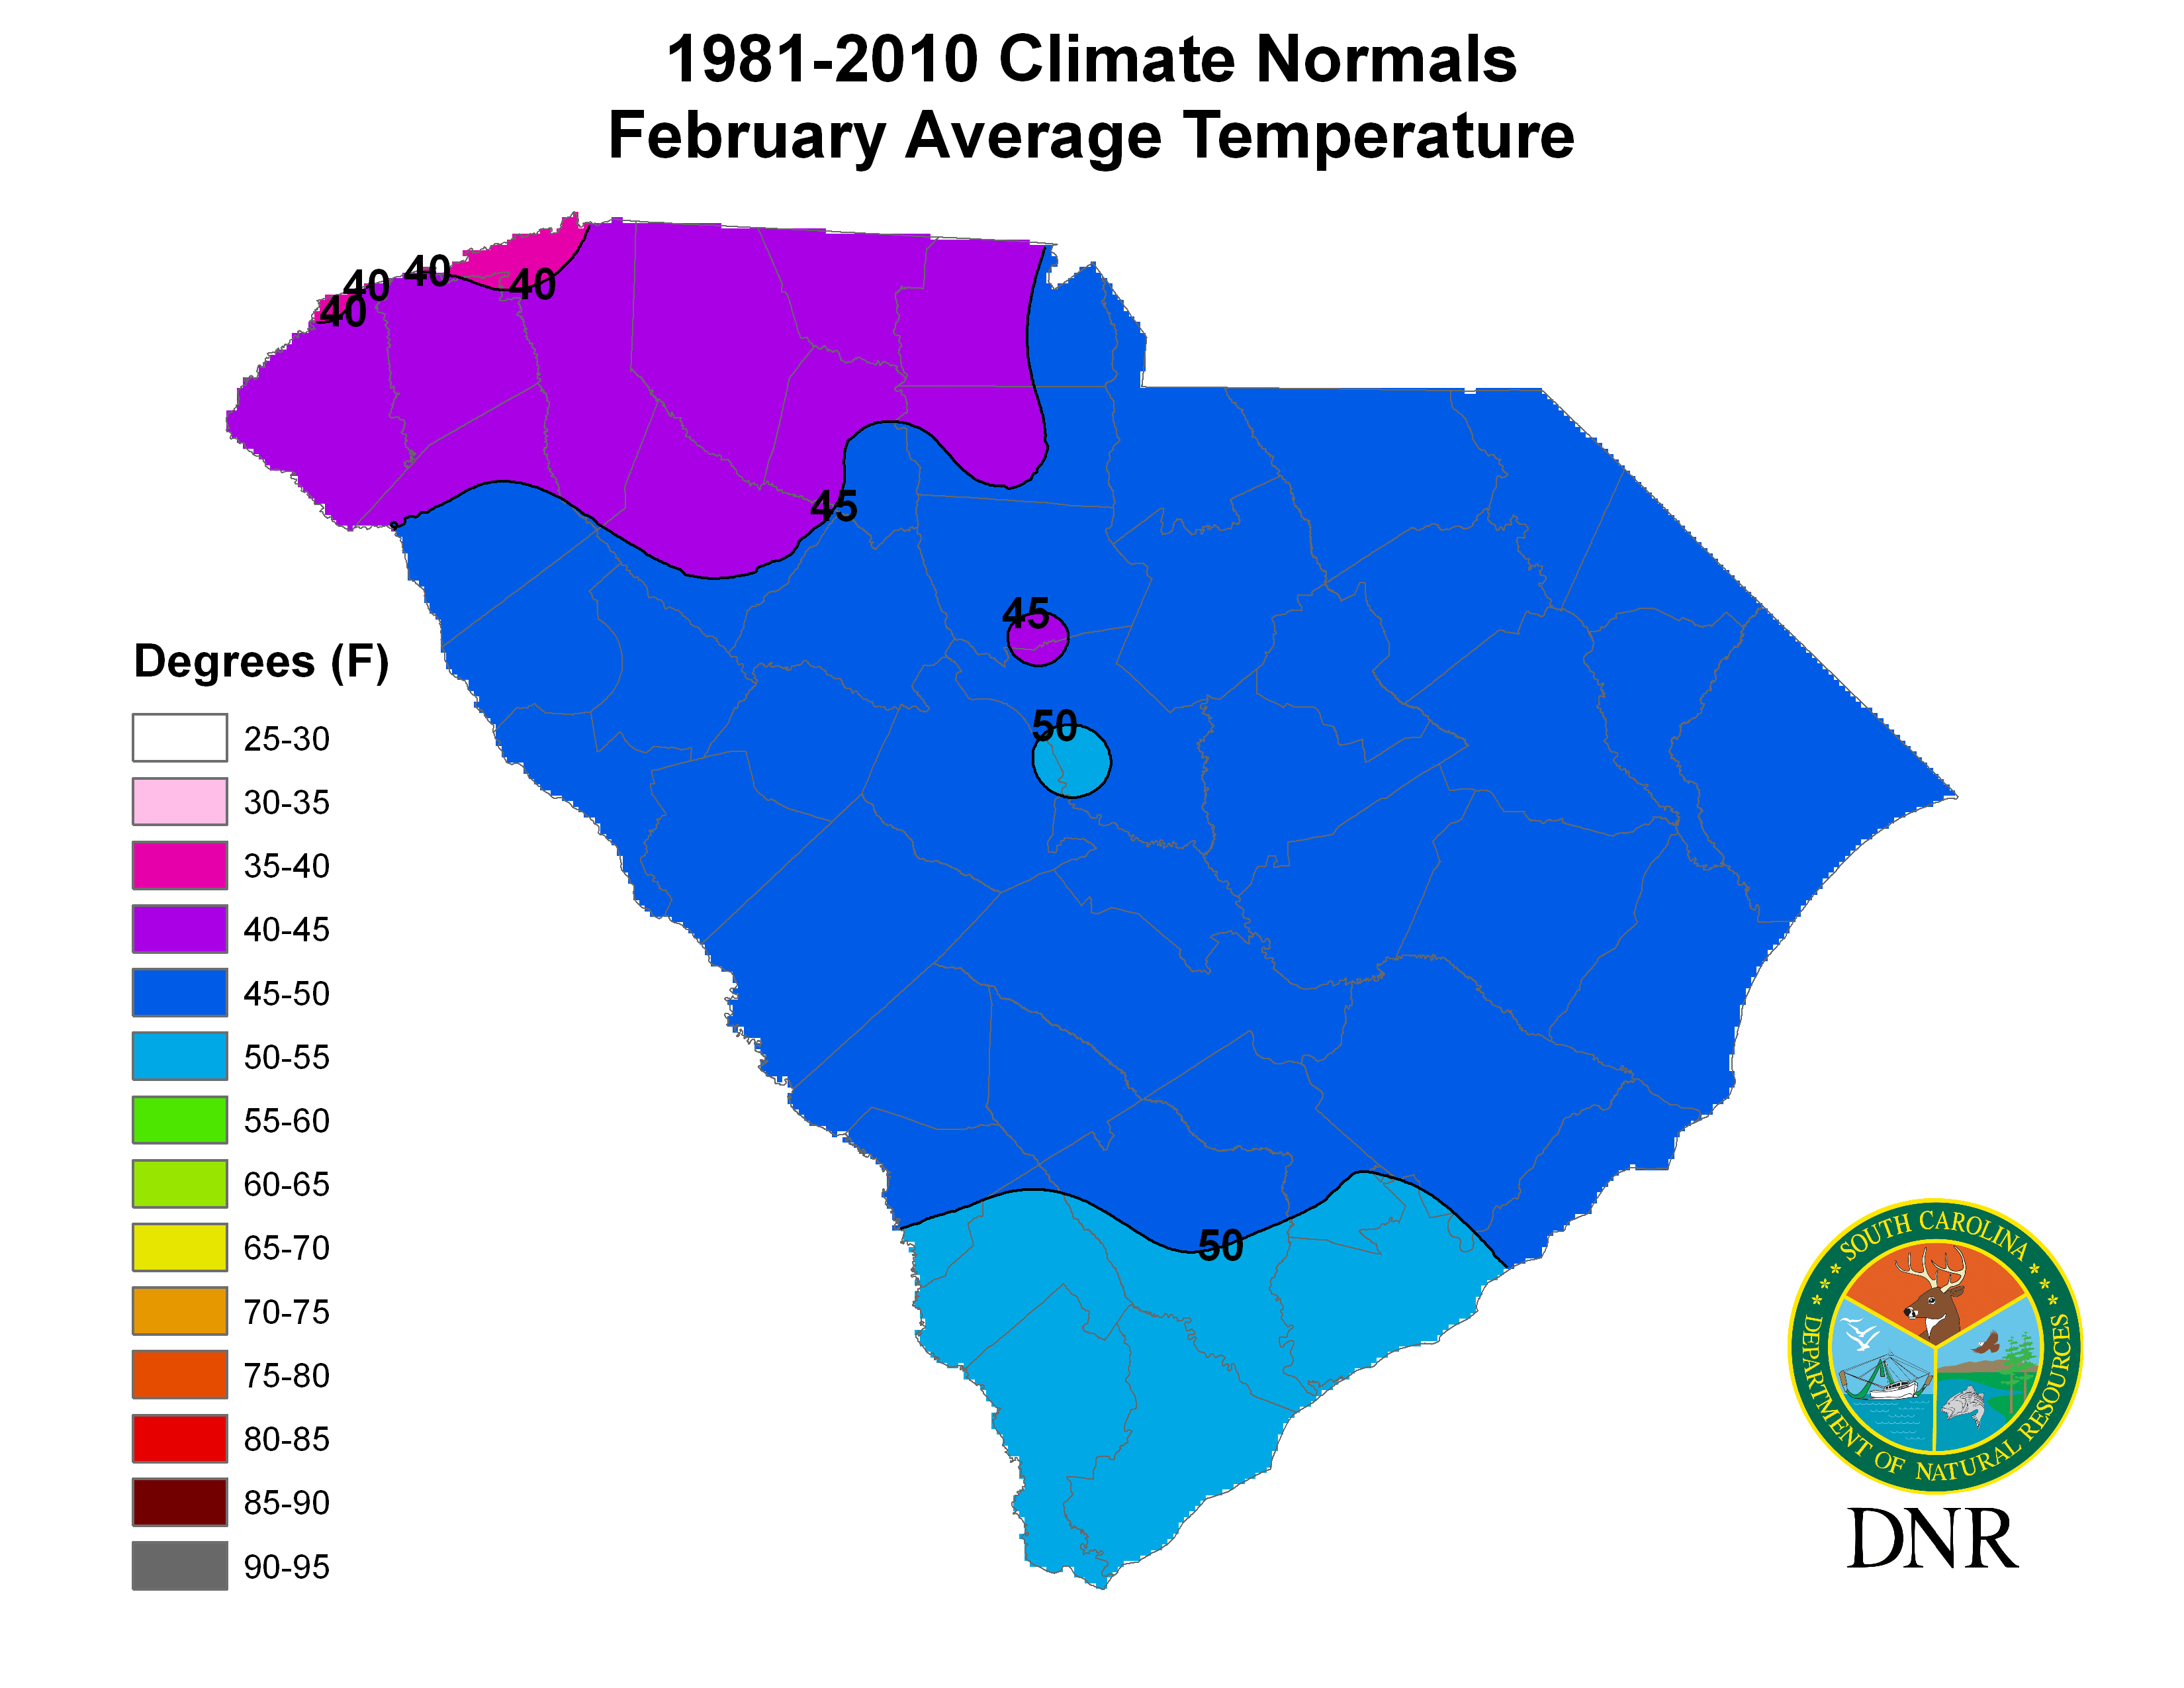 South carolina state climatology office t avg ccuart Images